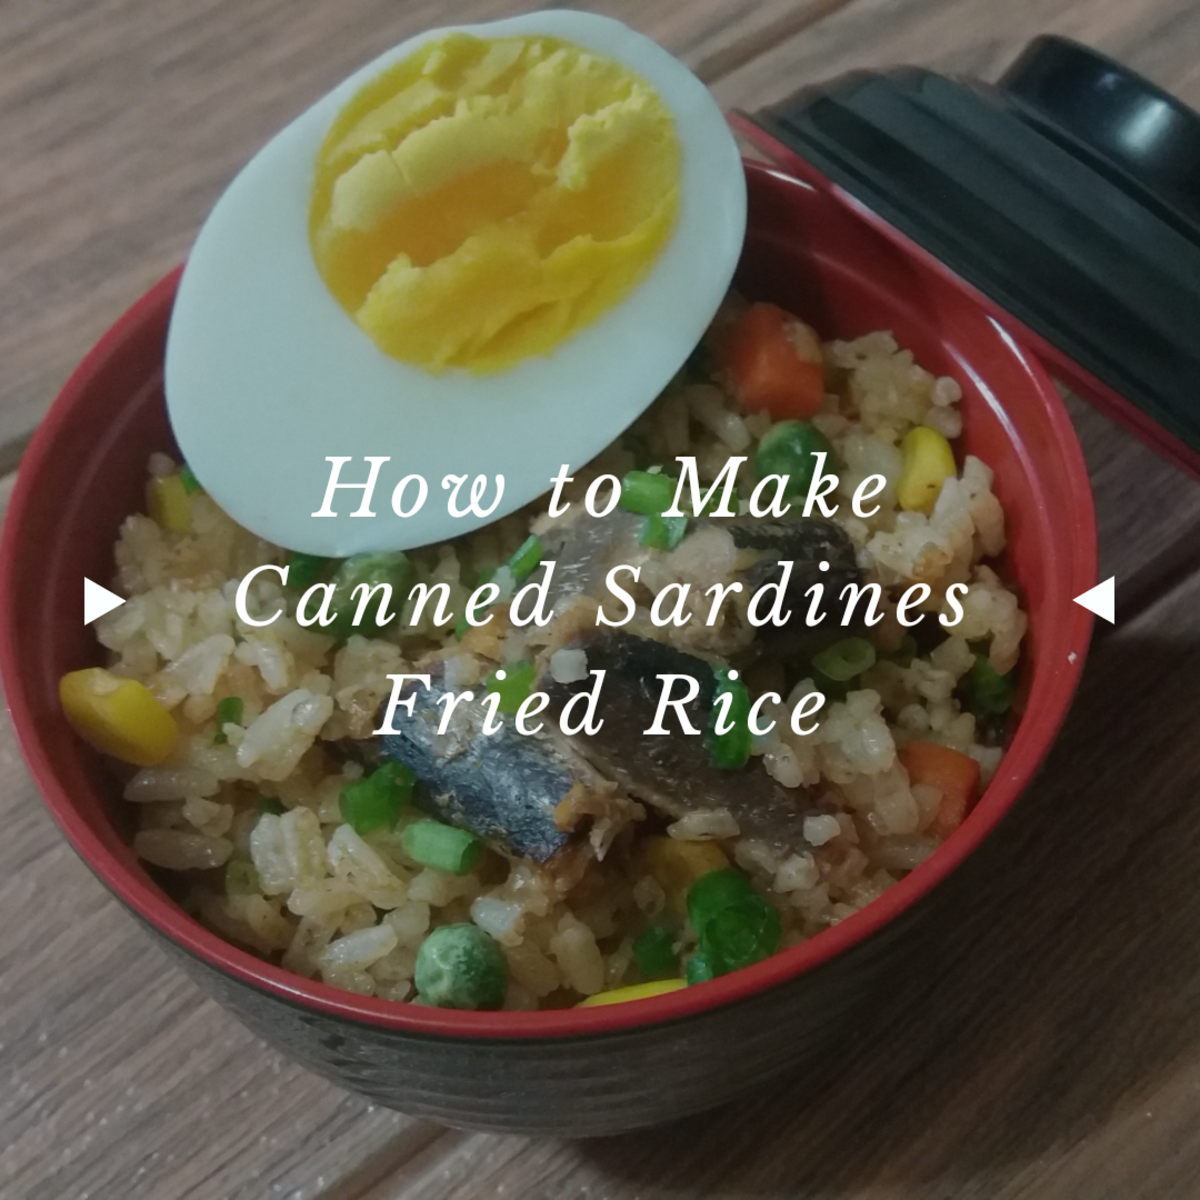 how to make canned sardines fried rice